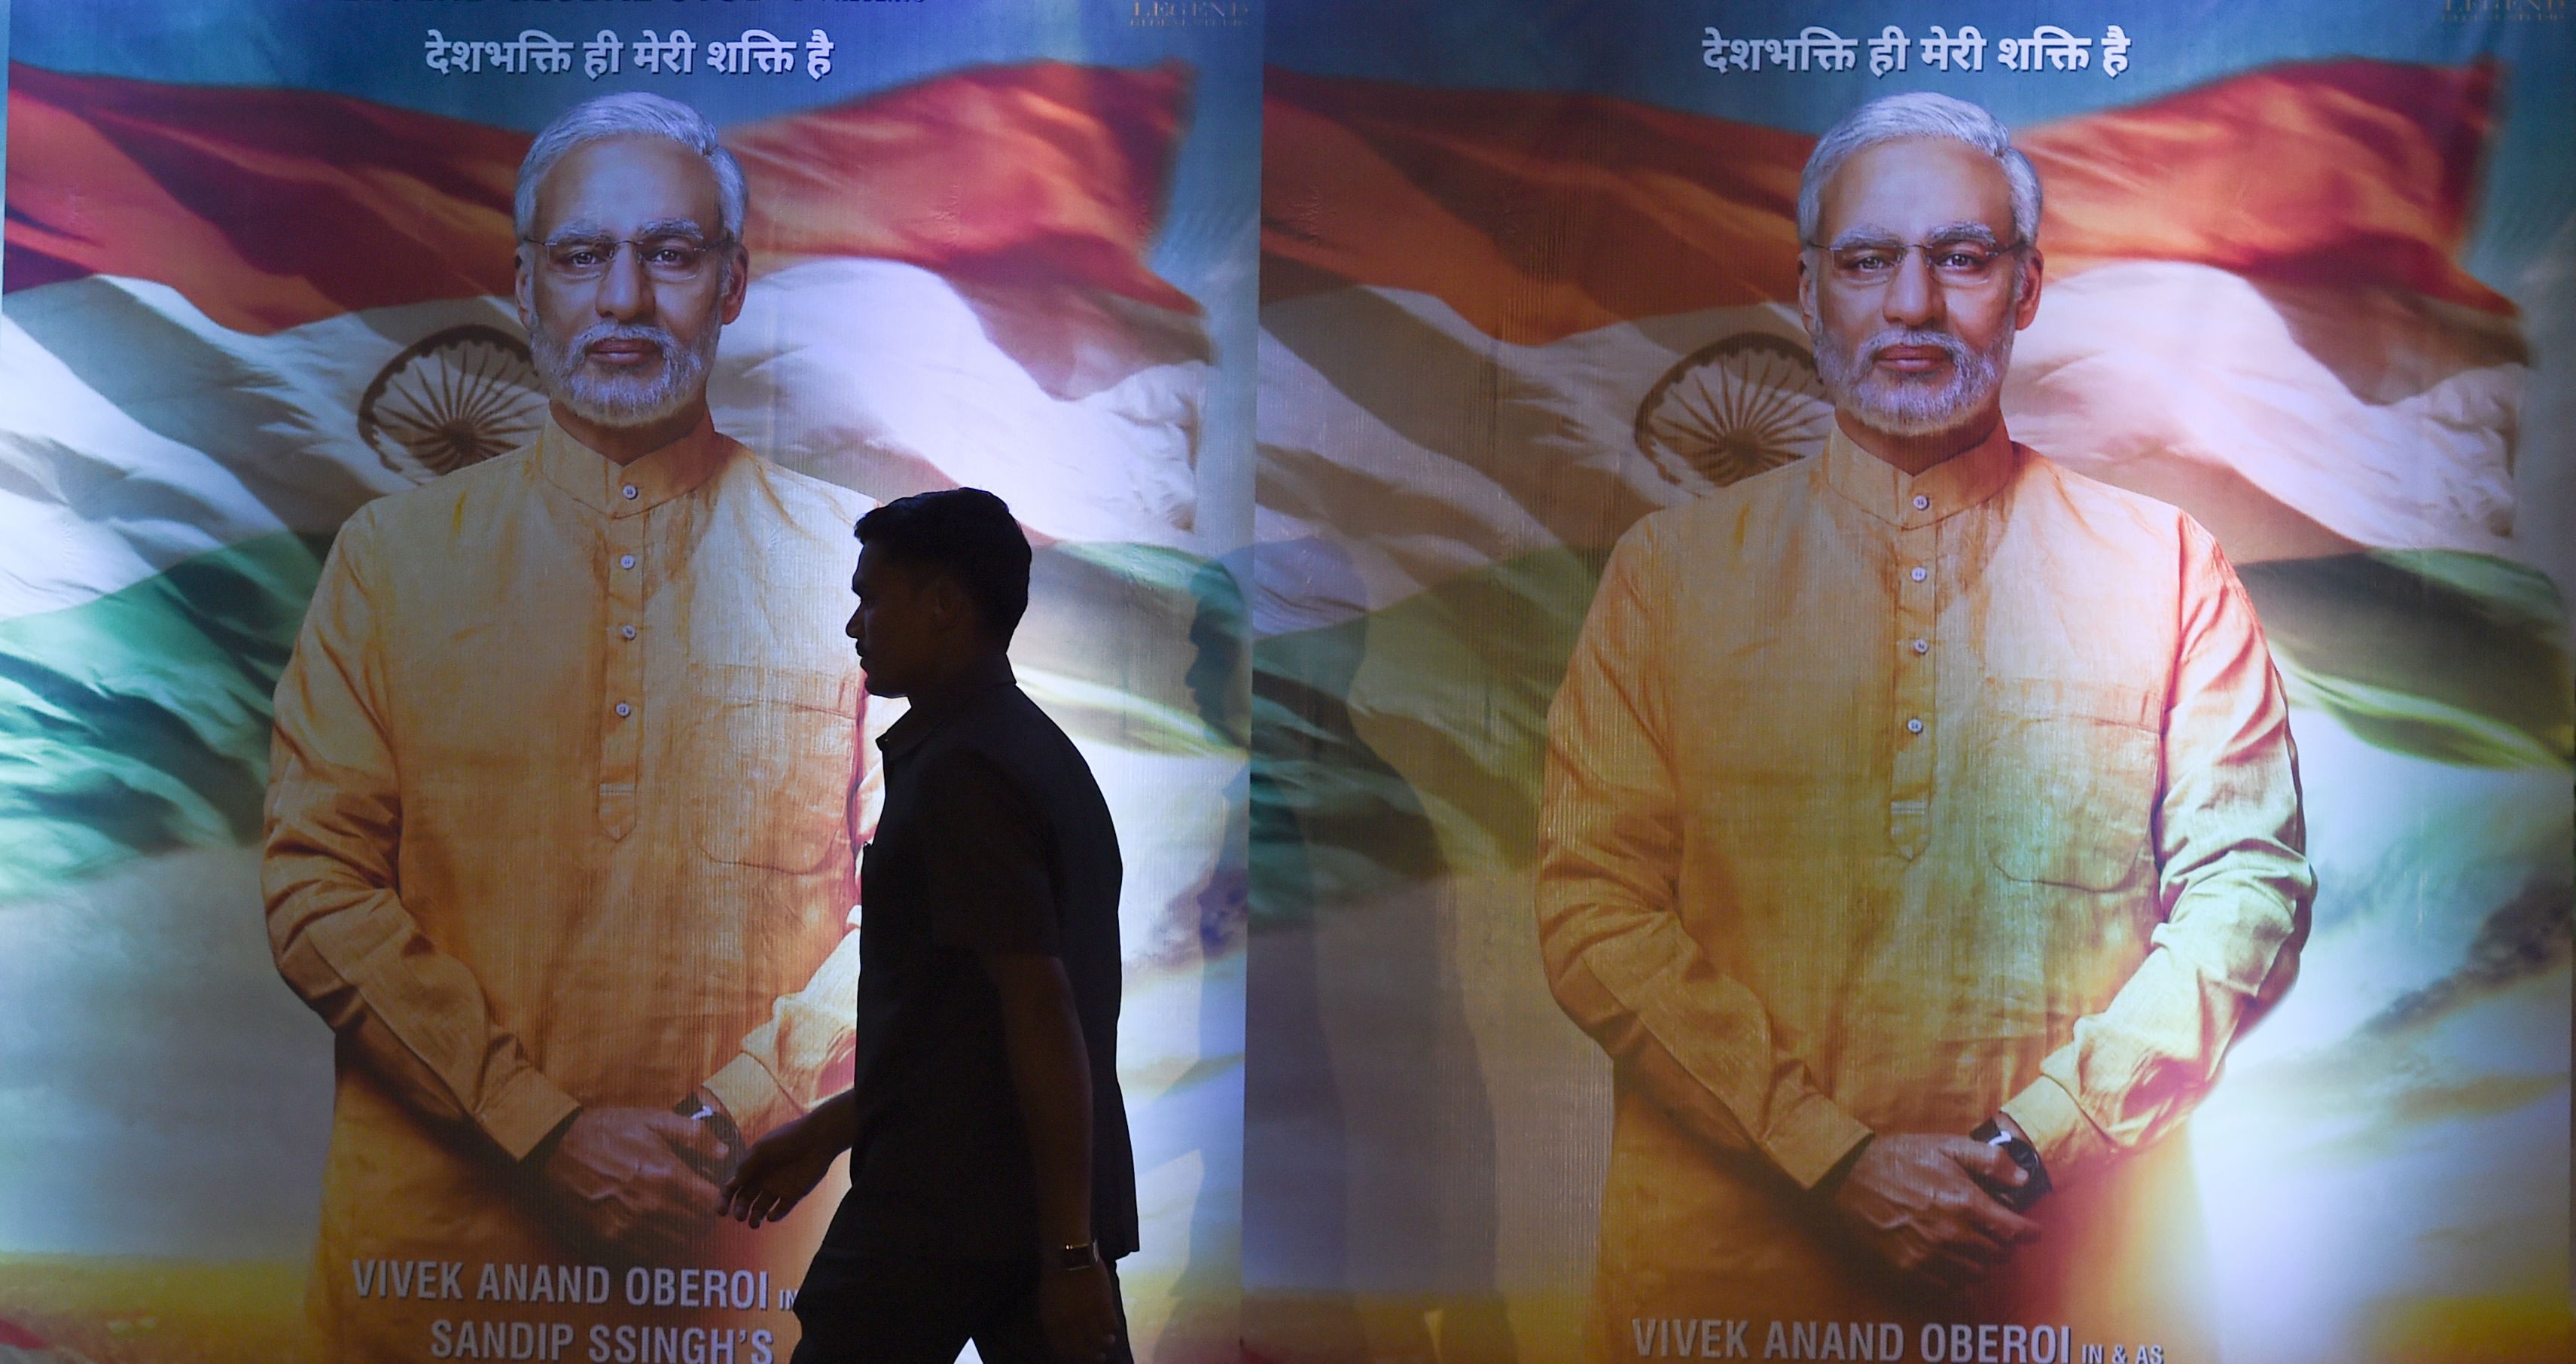 An Indian man walks in front of posters of the upcoming Bollywood film  PM Narendra Modi  - a biopic on Indian Prime Minister Narendra Modi